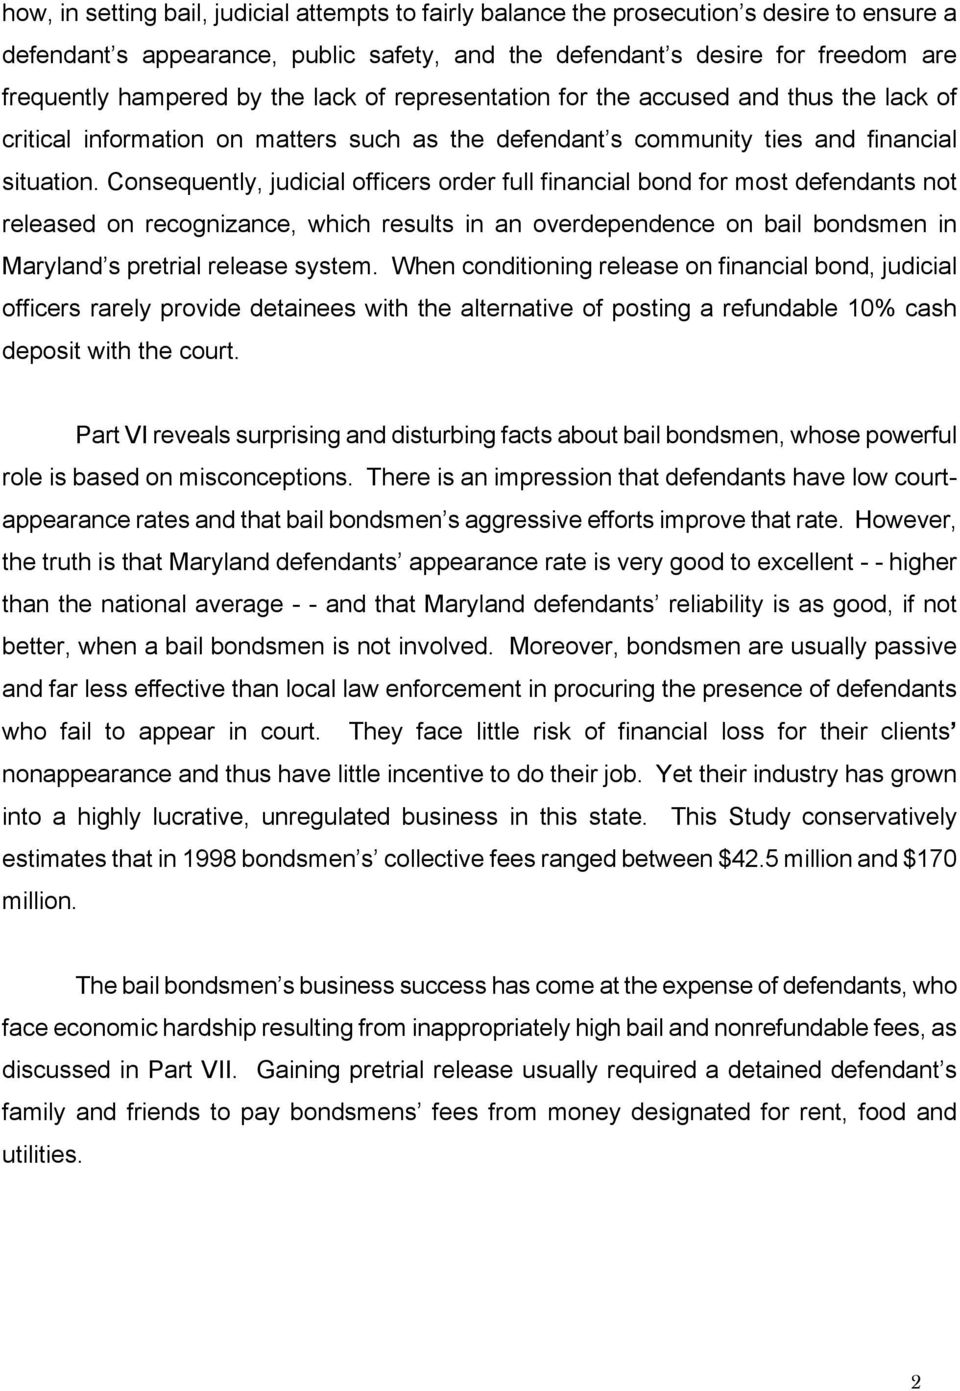 Consequently, judicial officers order full financial bond for most defendants not released on recognizance, which results in an overdependence on bail bondsmen in Maryland s pretrial release system.